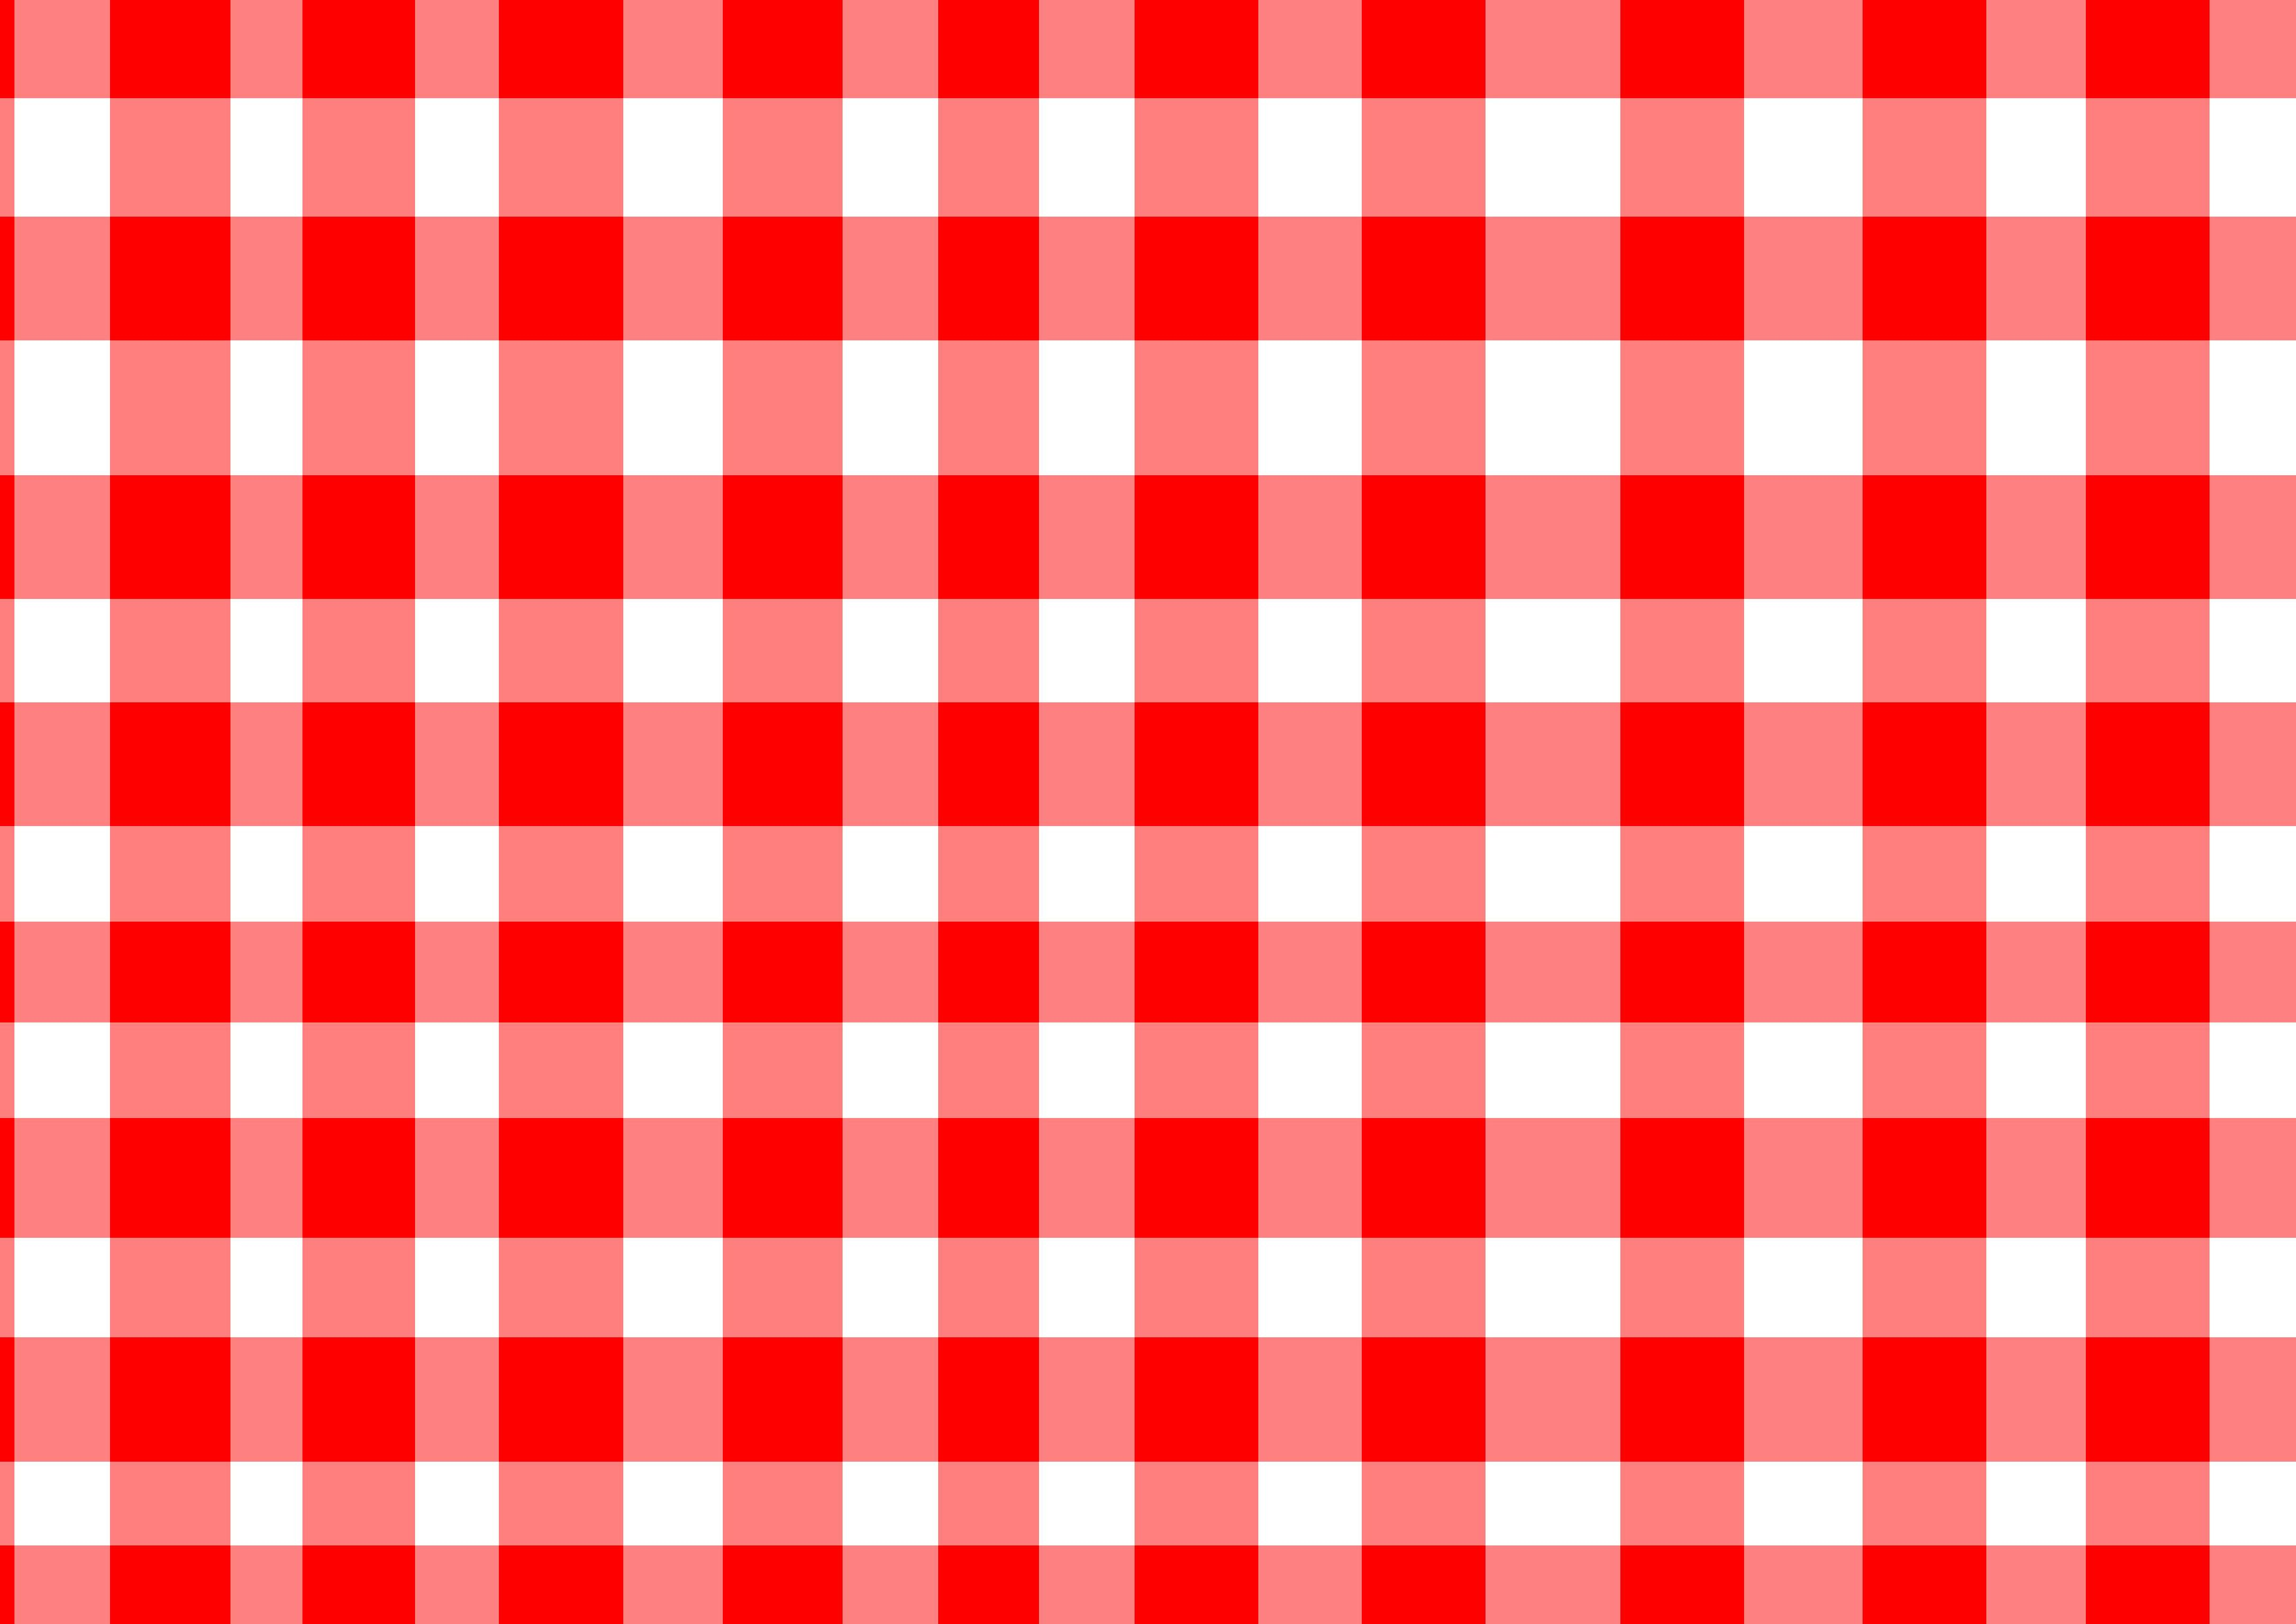 red and white checkered picnic blanket - Blankets & Throws ... image freeuse library